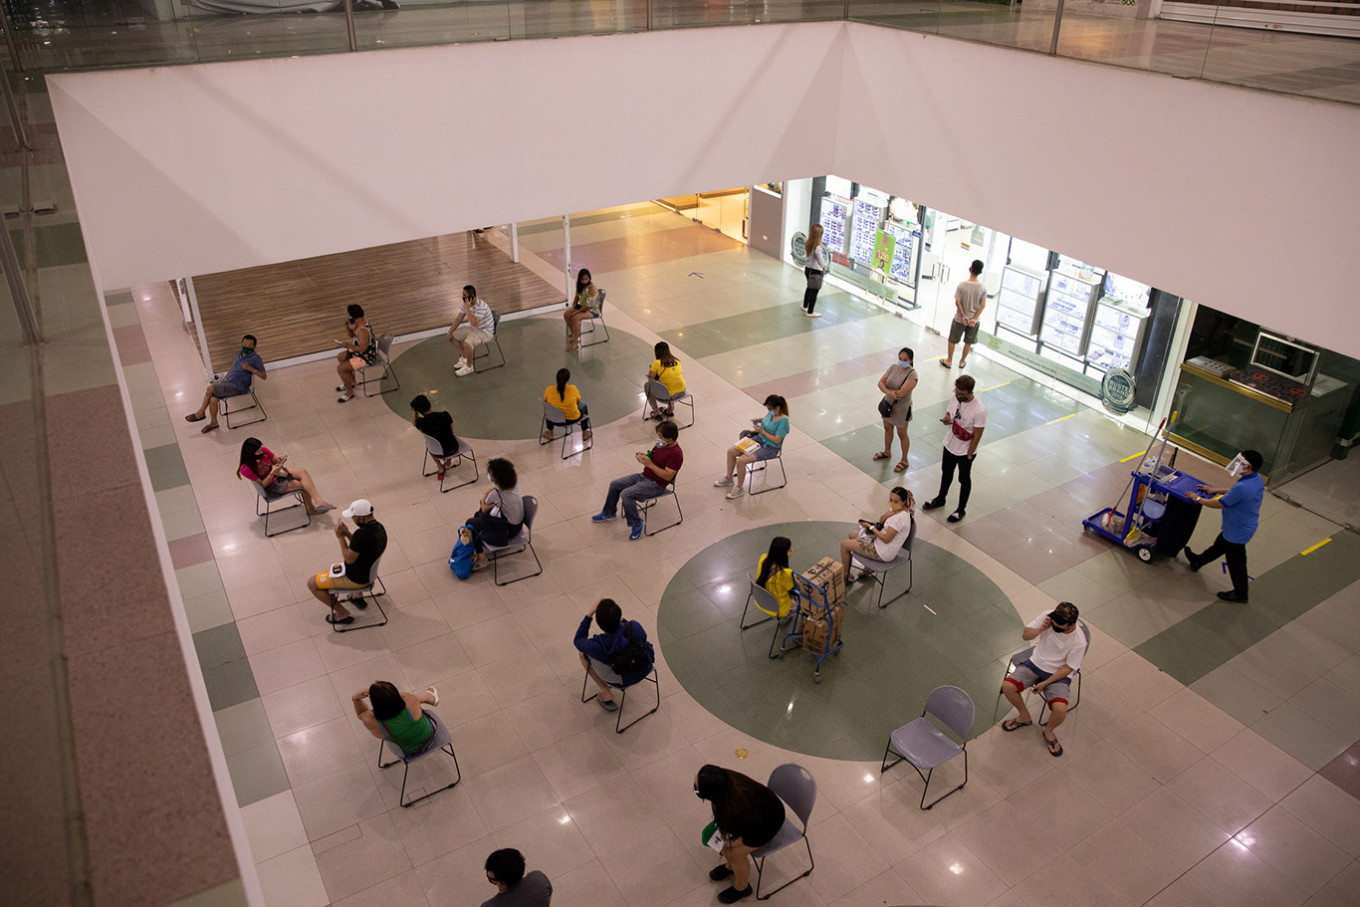 No students in school without virus vaccine, Philippines says